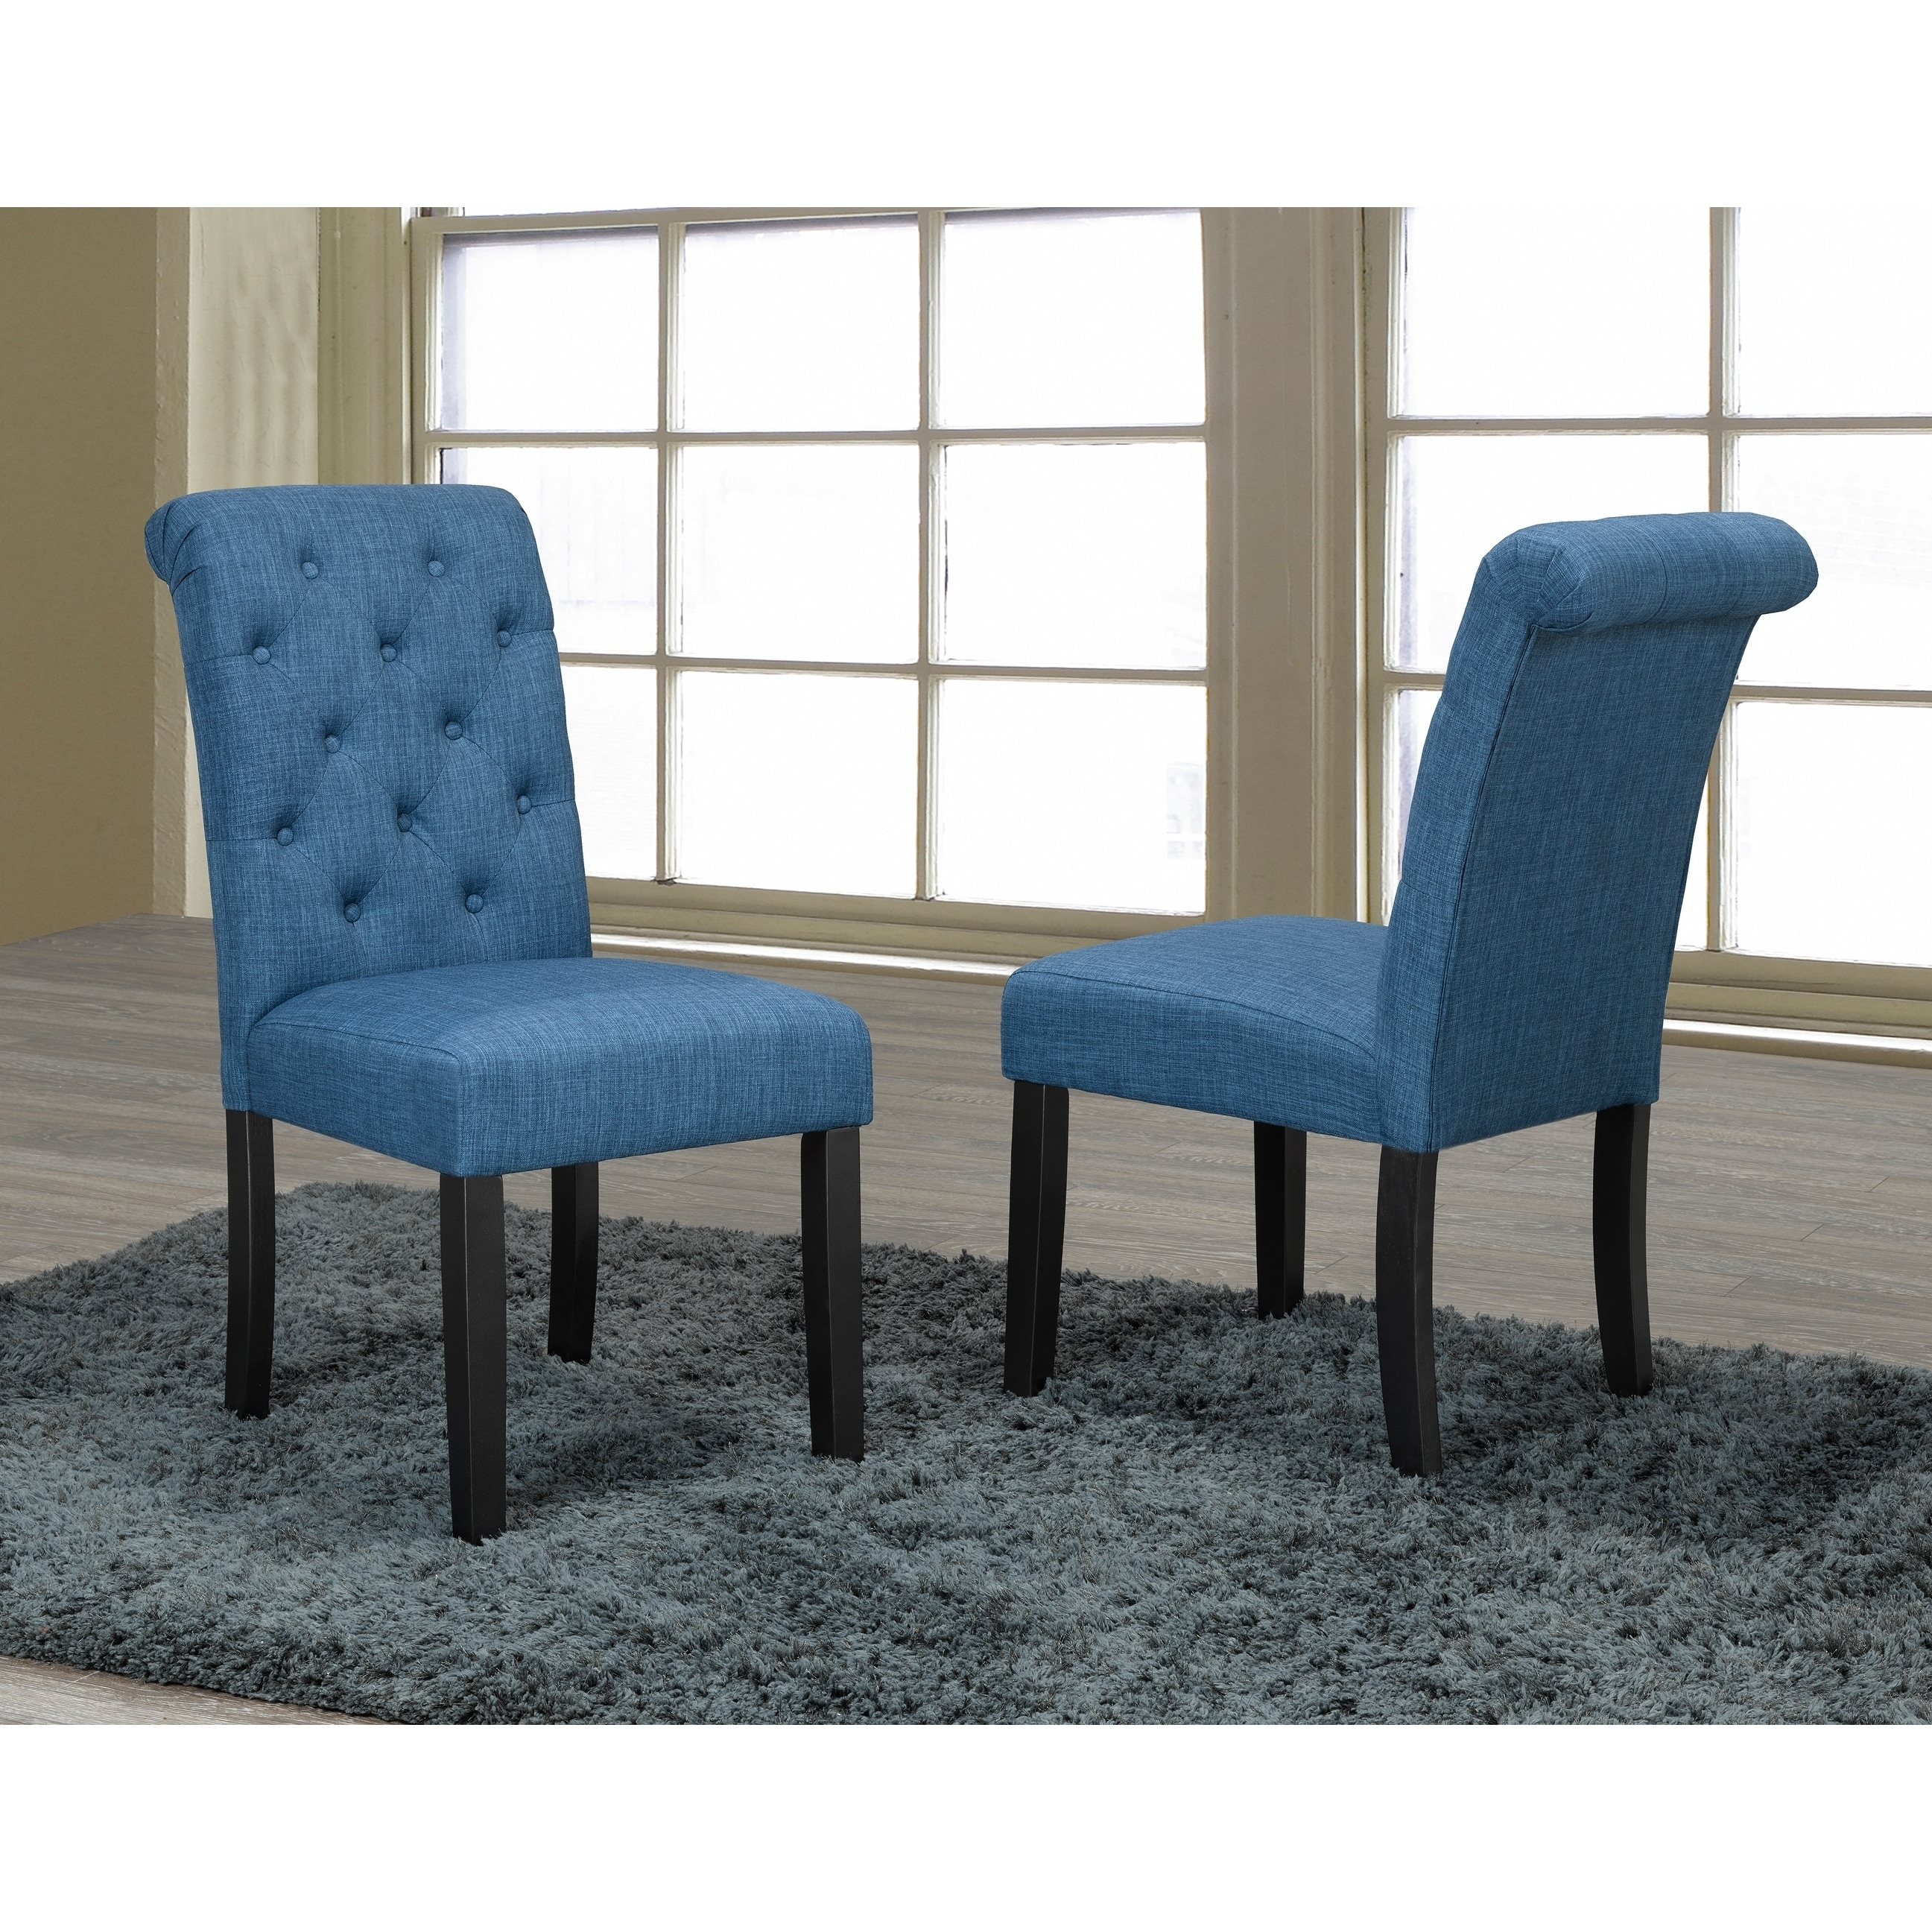 Soho Tufted Dining Chair Set Of 2 Blue